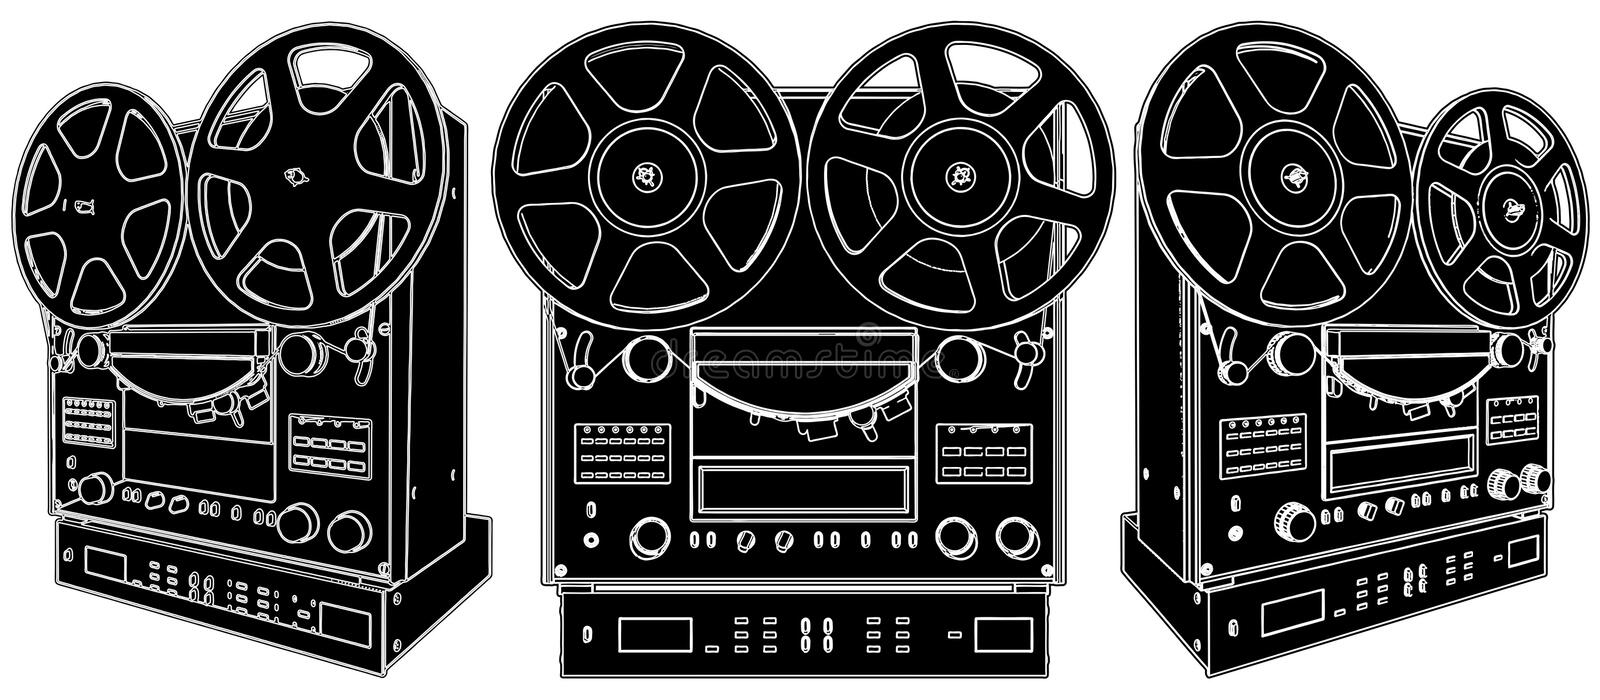 Download Professional Stereo Audio Tape Deck Recorder Stock Vector - Image: 18915009